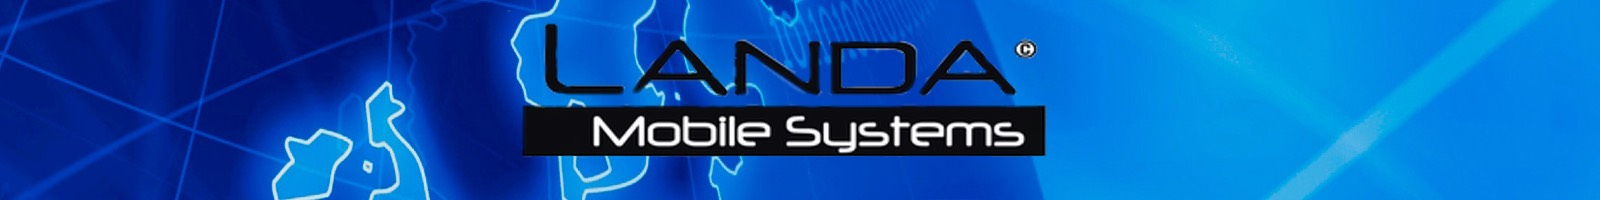 Landa Mobile Systems LLC pagelmslogobanner TRIANGULAR GIN POLES